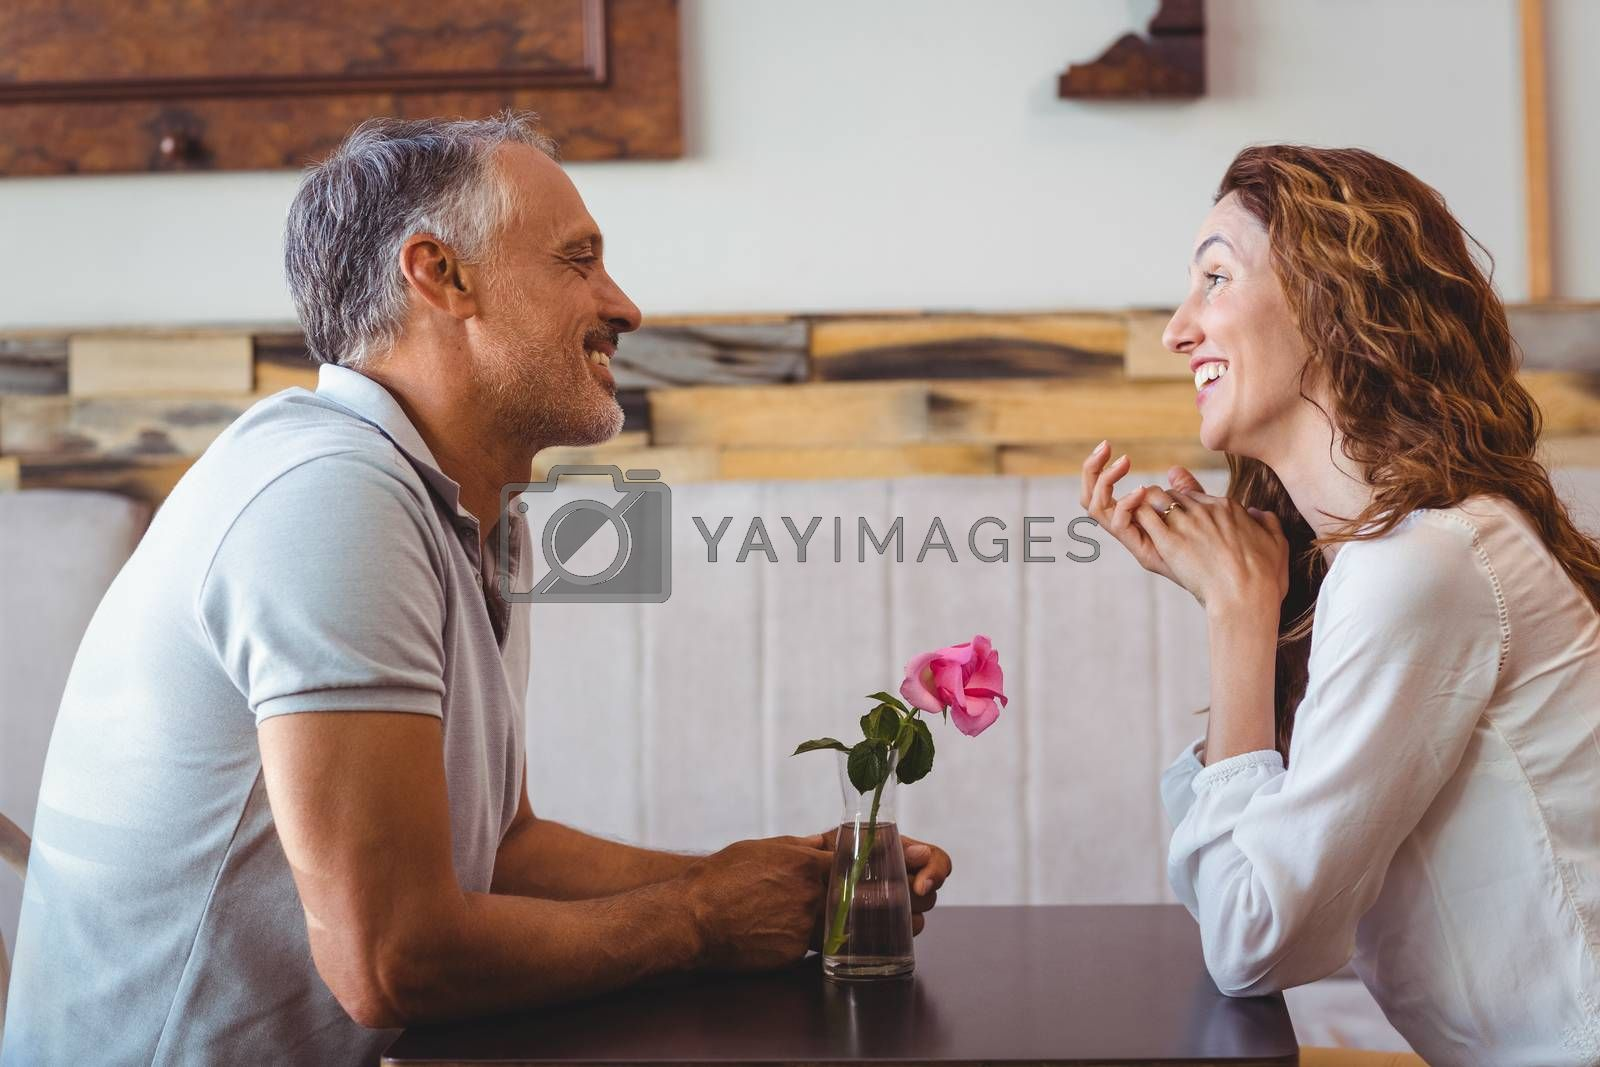 Royalty free image of Cute couple on a date by Wavebreakmedia